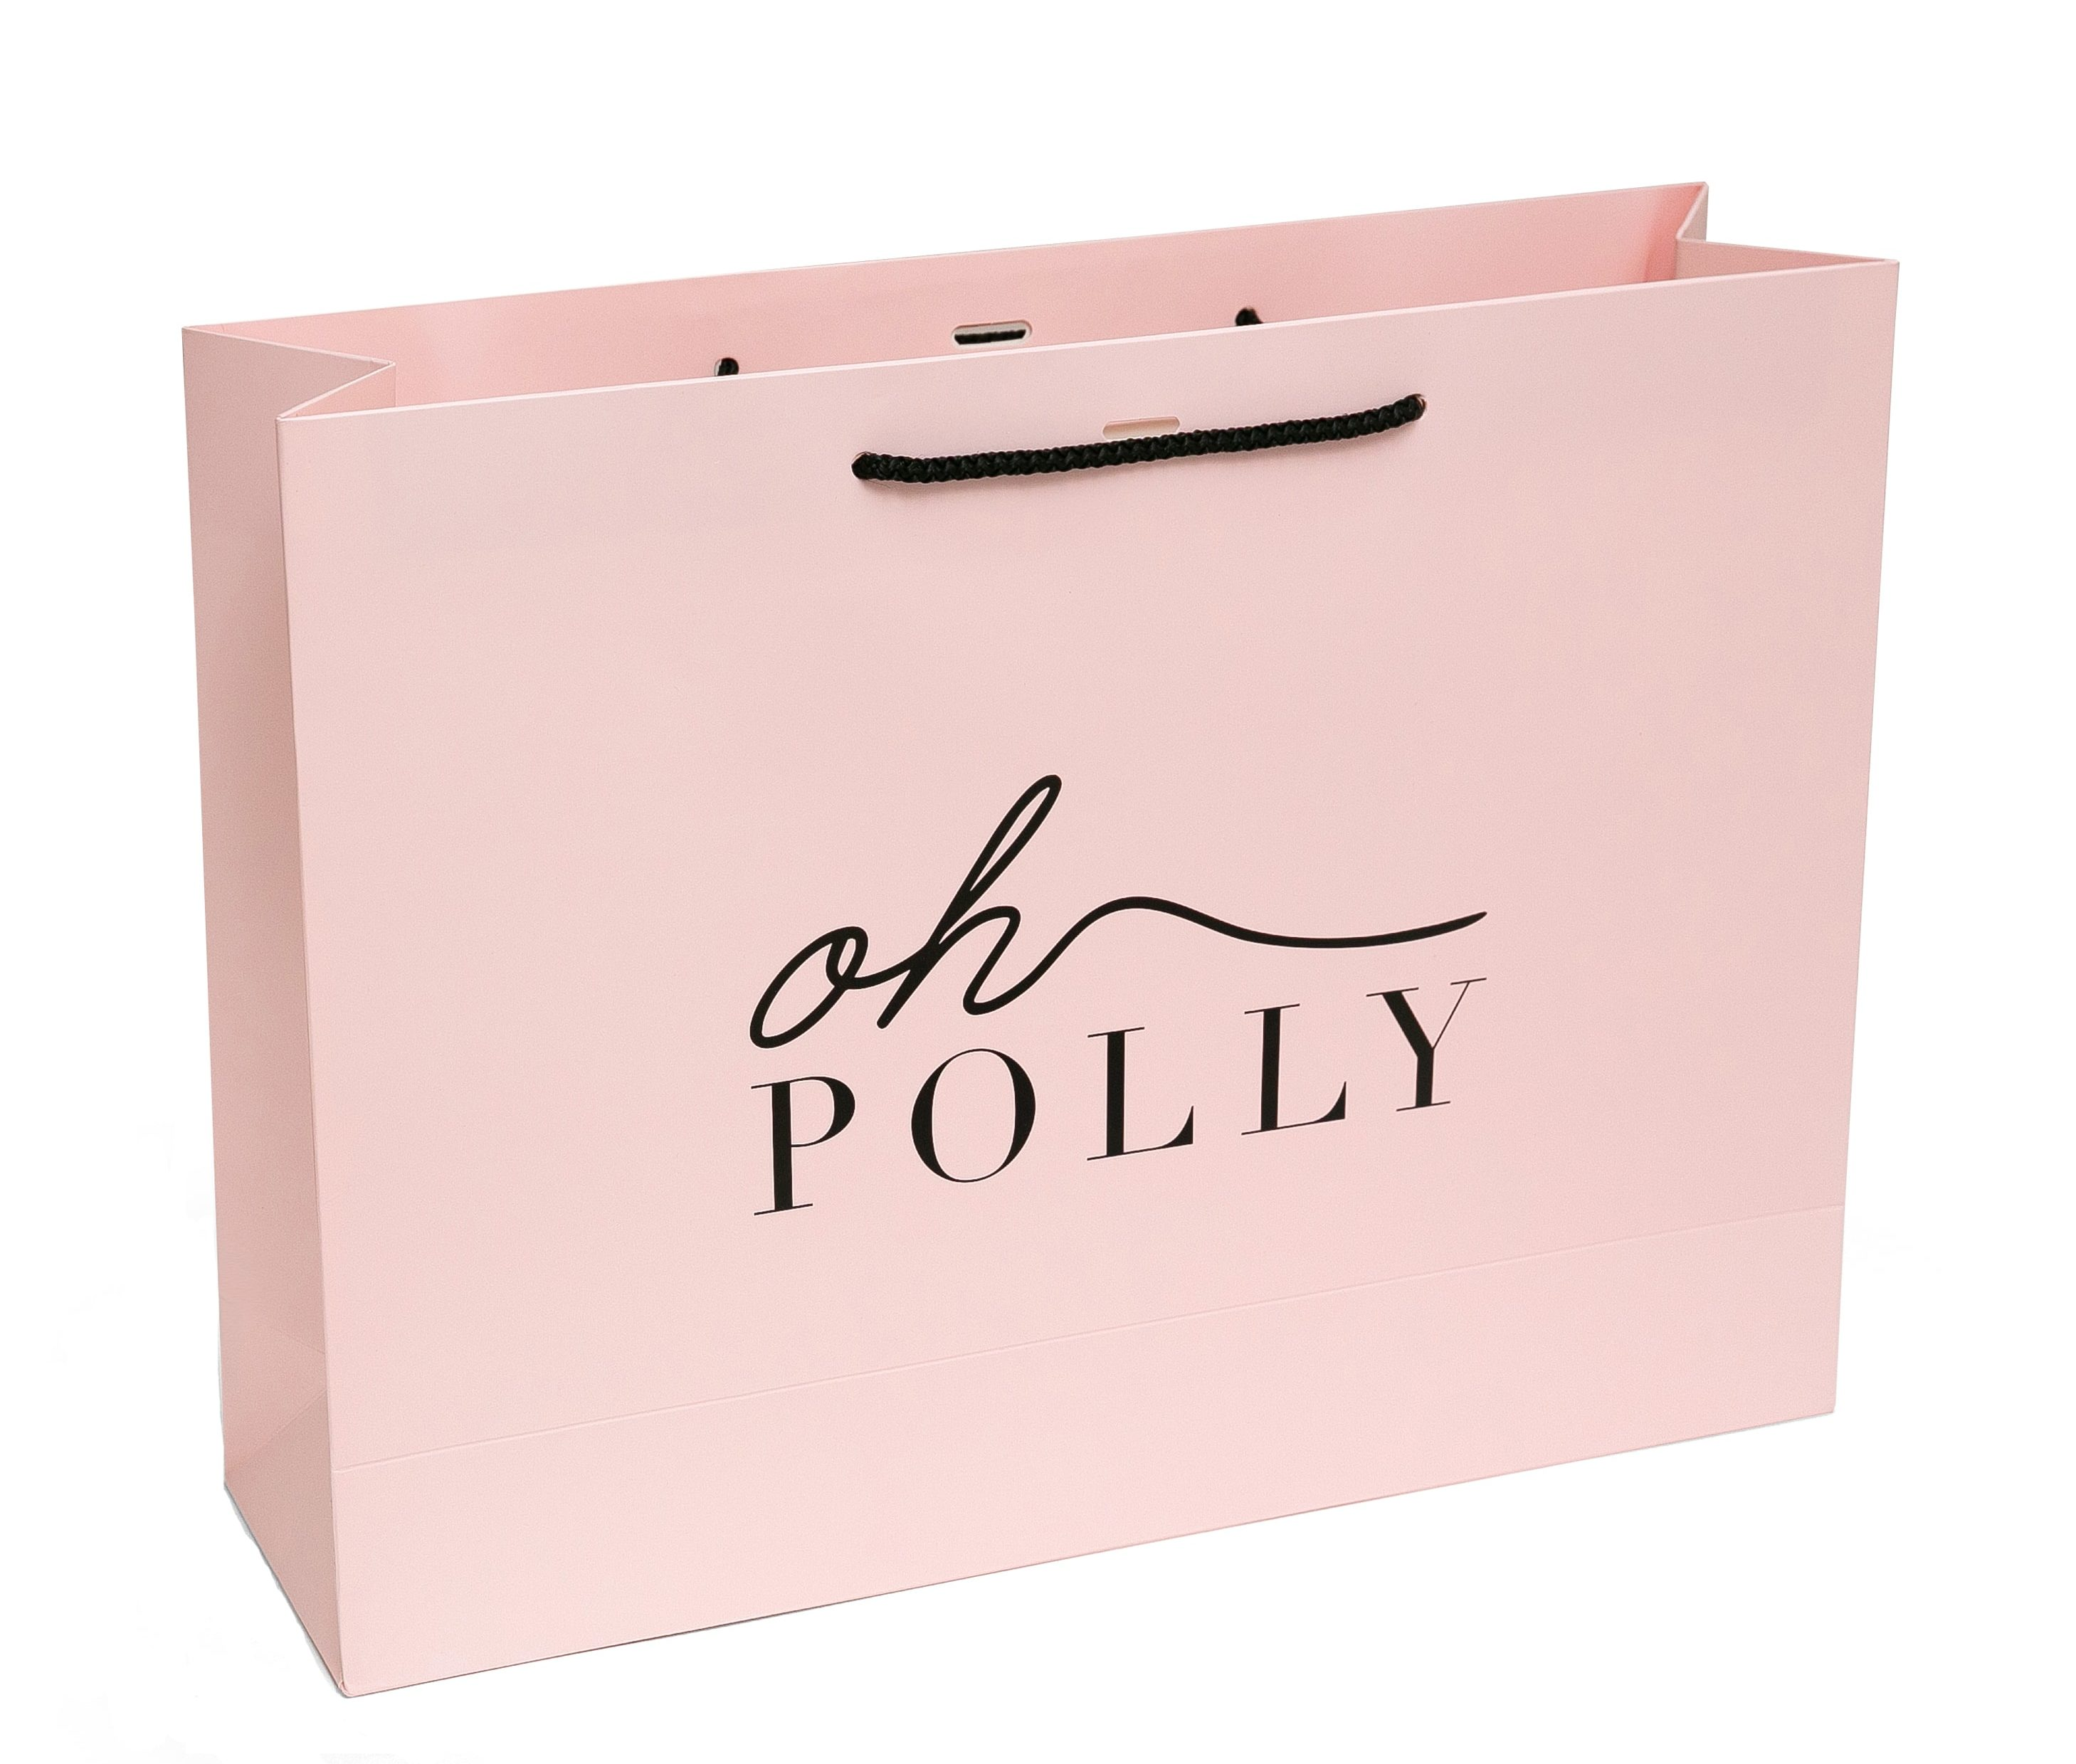 Oh Polly laminated handmade paper bag